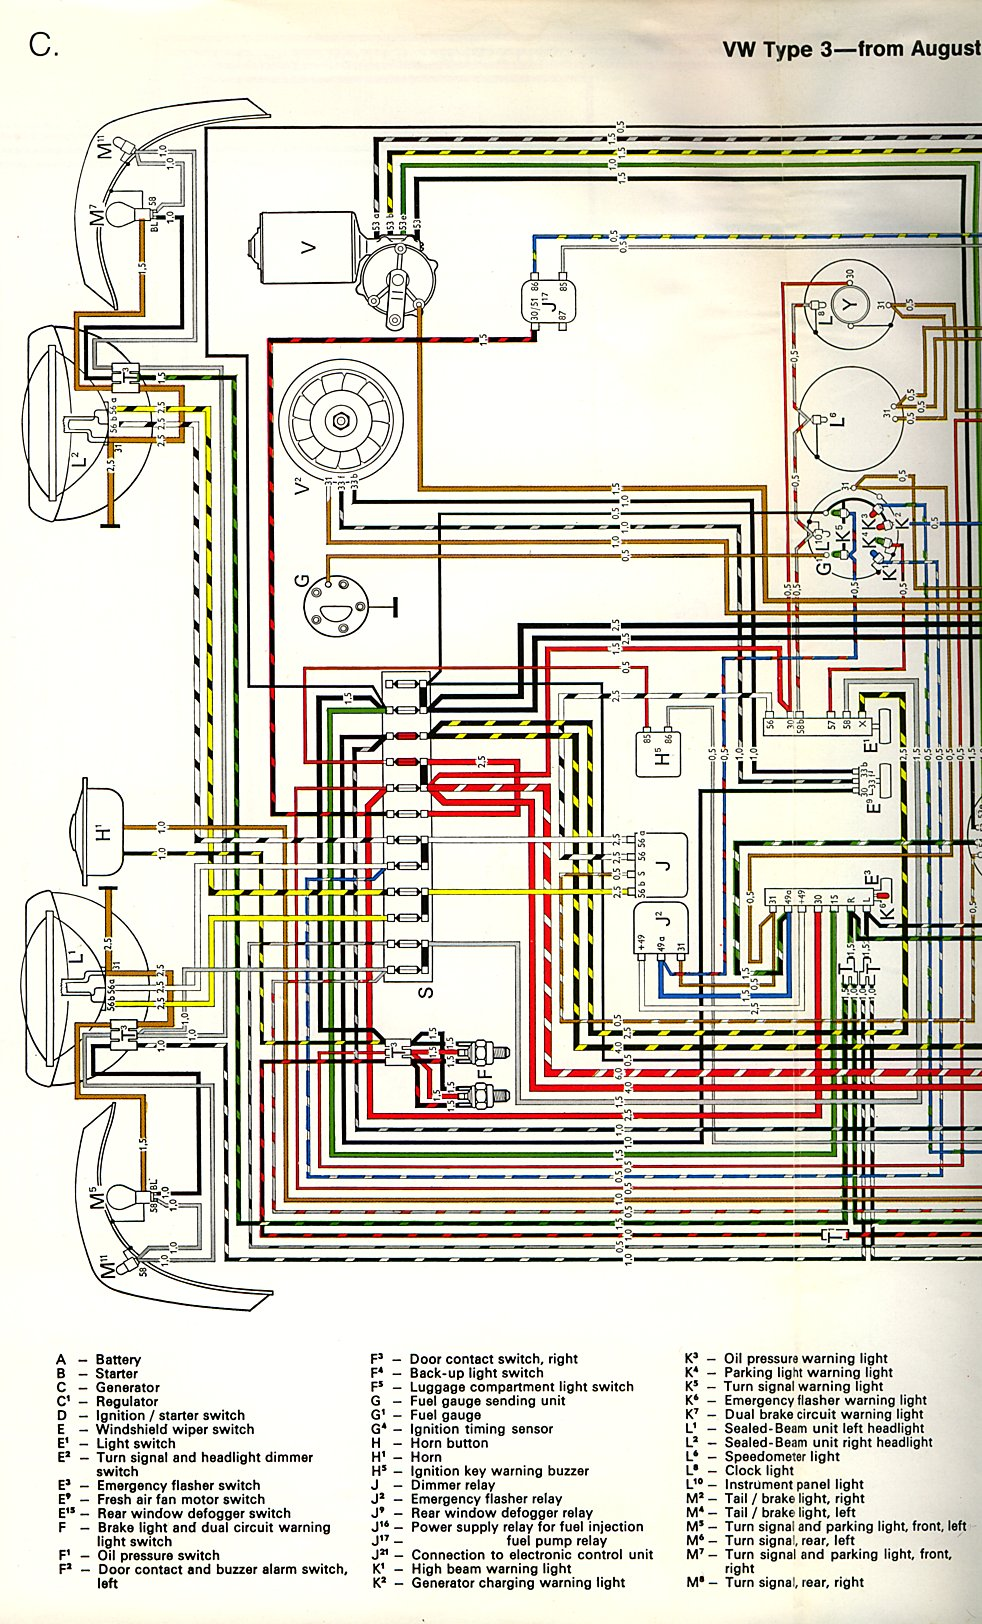 type3_72a thesamba com type 3 wiring diagrams 1973 vw wiring diagram at nearapp.co